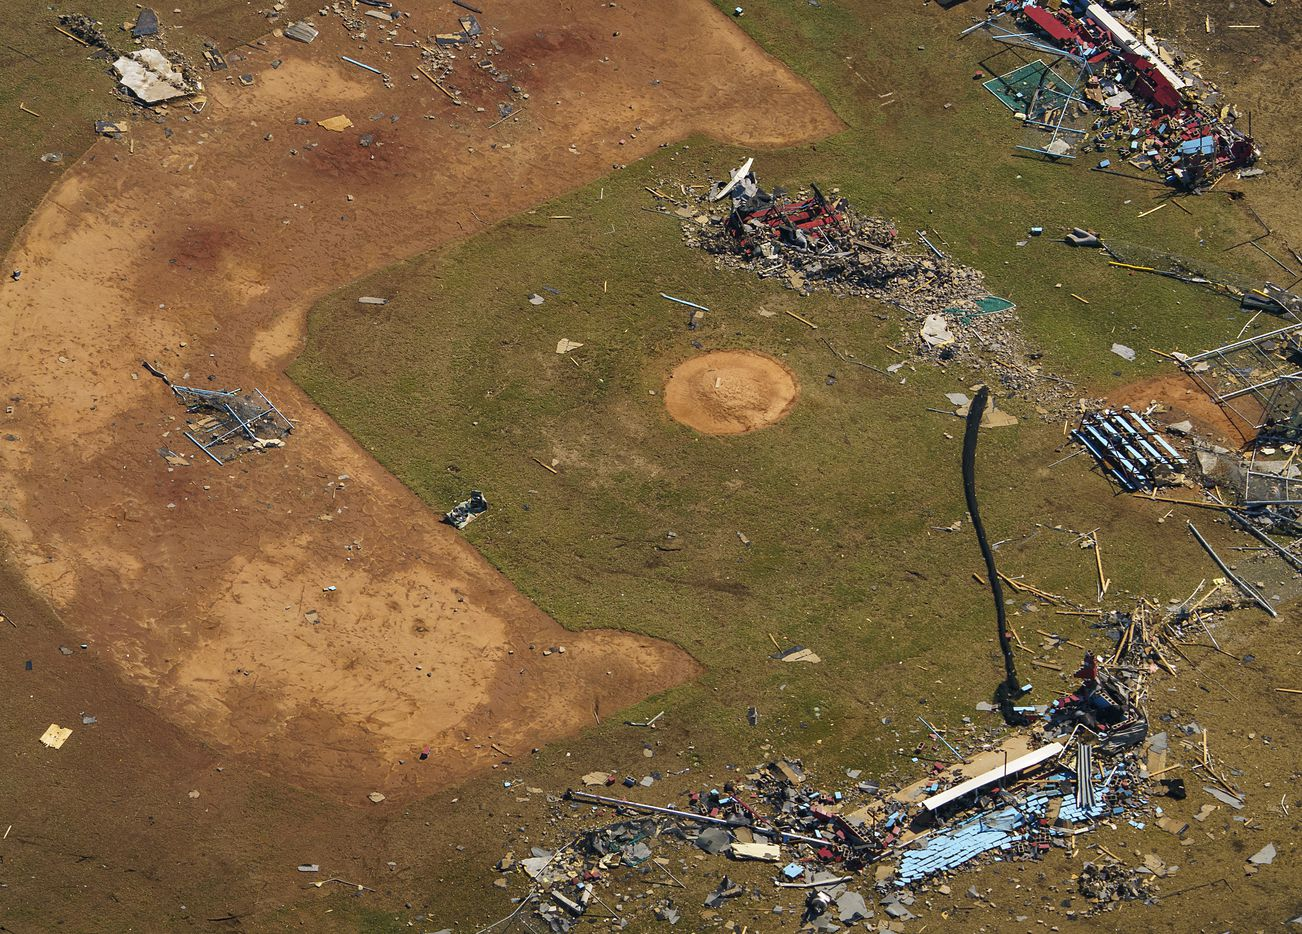 Debris from tornado damage is strewn across a baseball field at Thomas Jefferson High School in an aerial view on Monday, Oct. 21, 2019, in Dallas. (Smiley N. Pool/The Dallas Morning News)